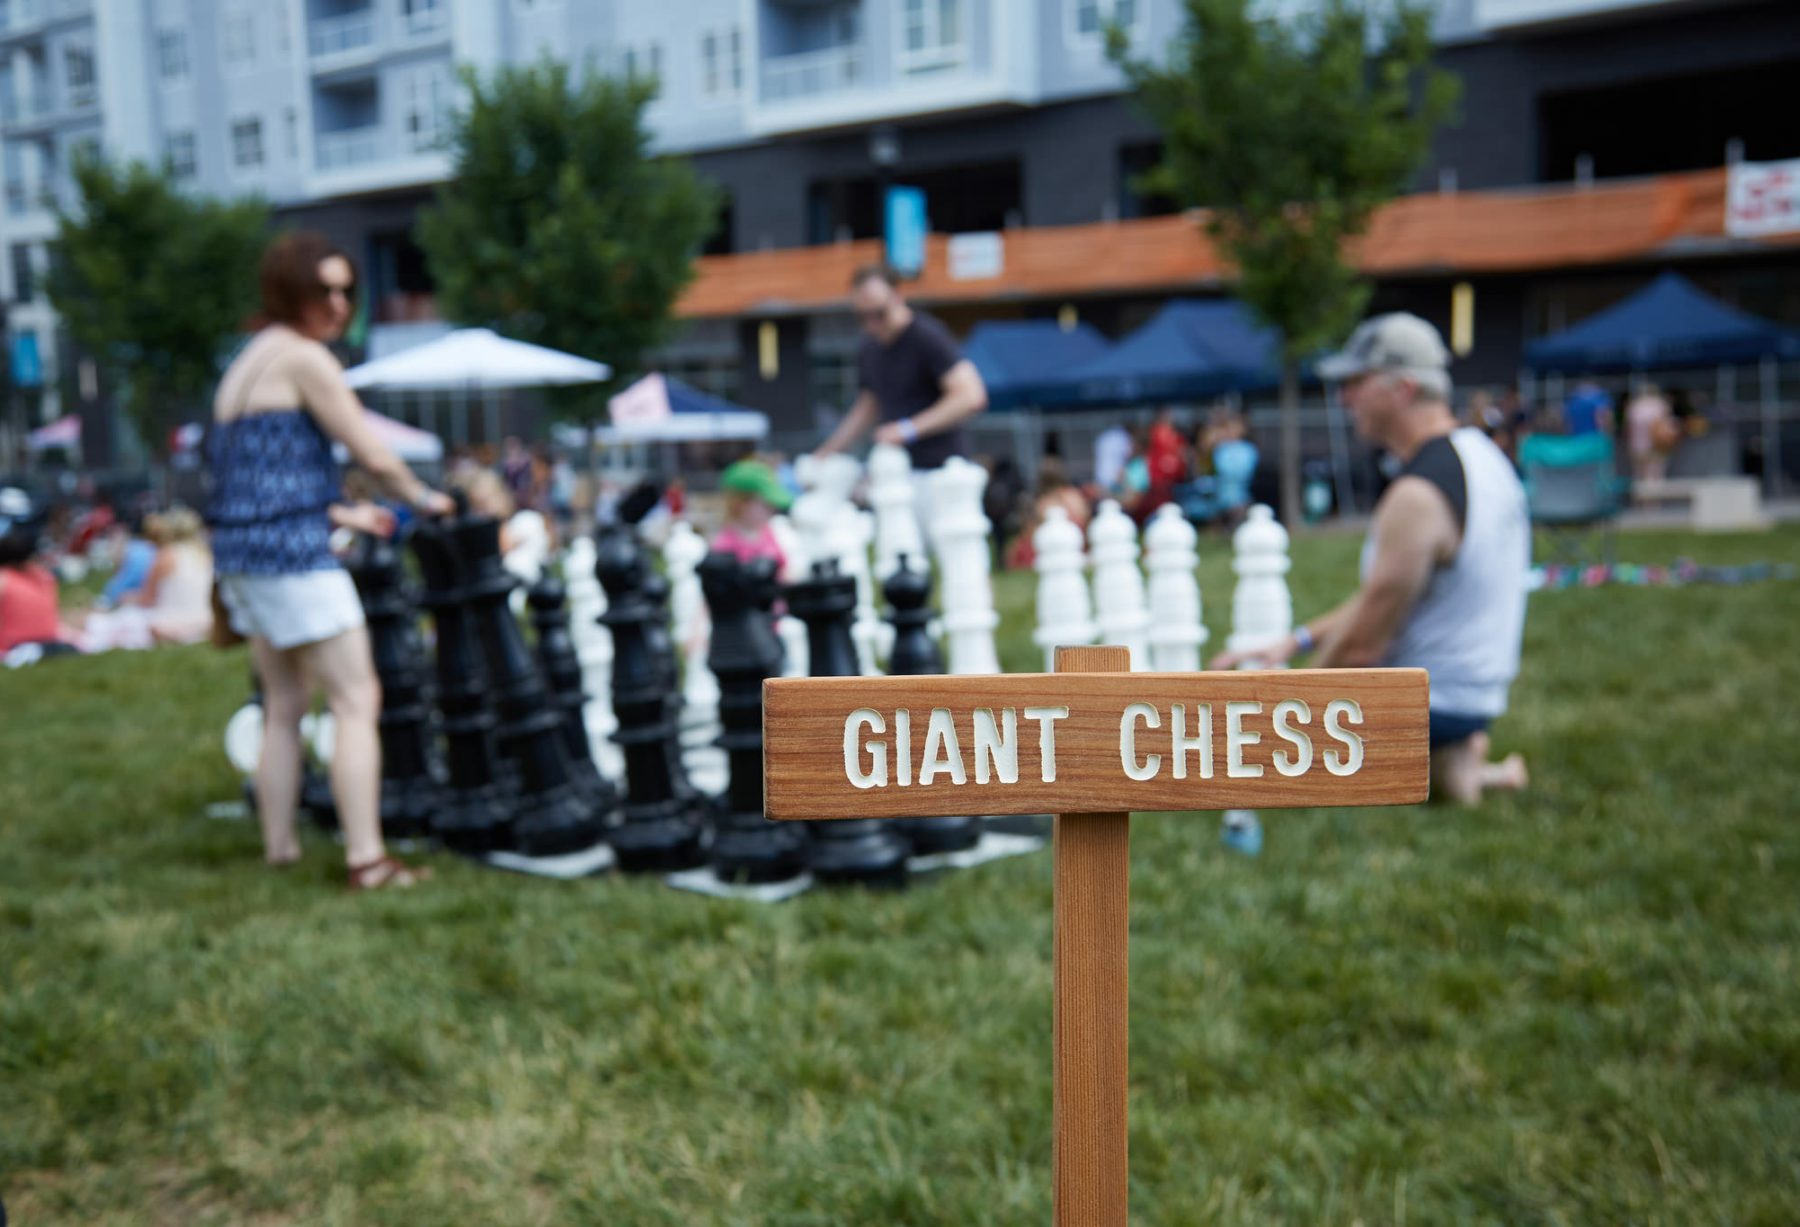 Giant Chess at Sunday Funday